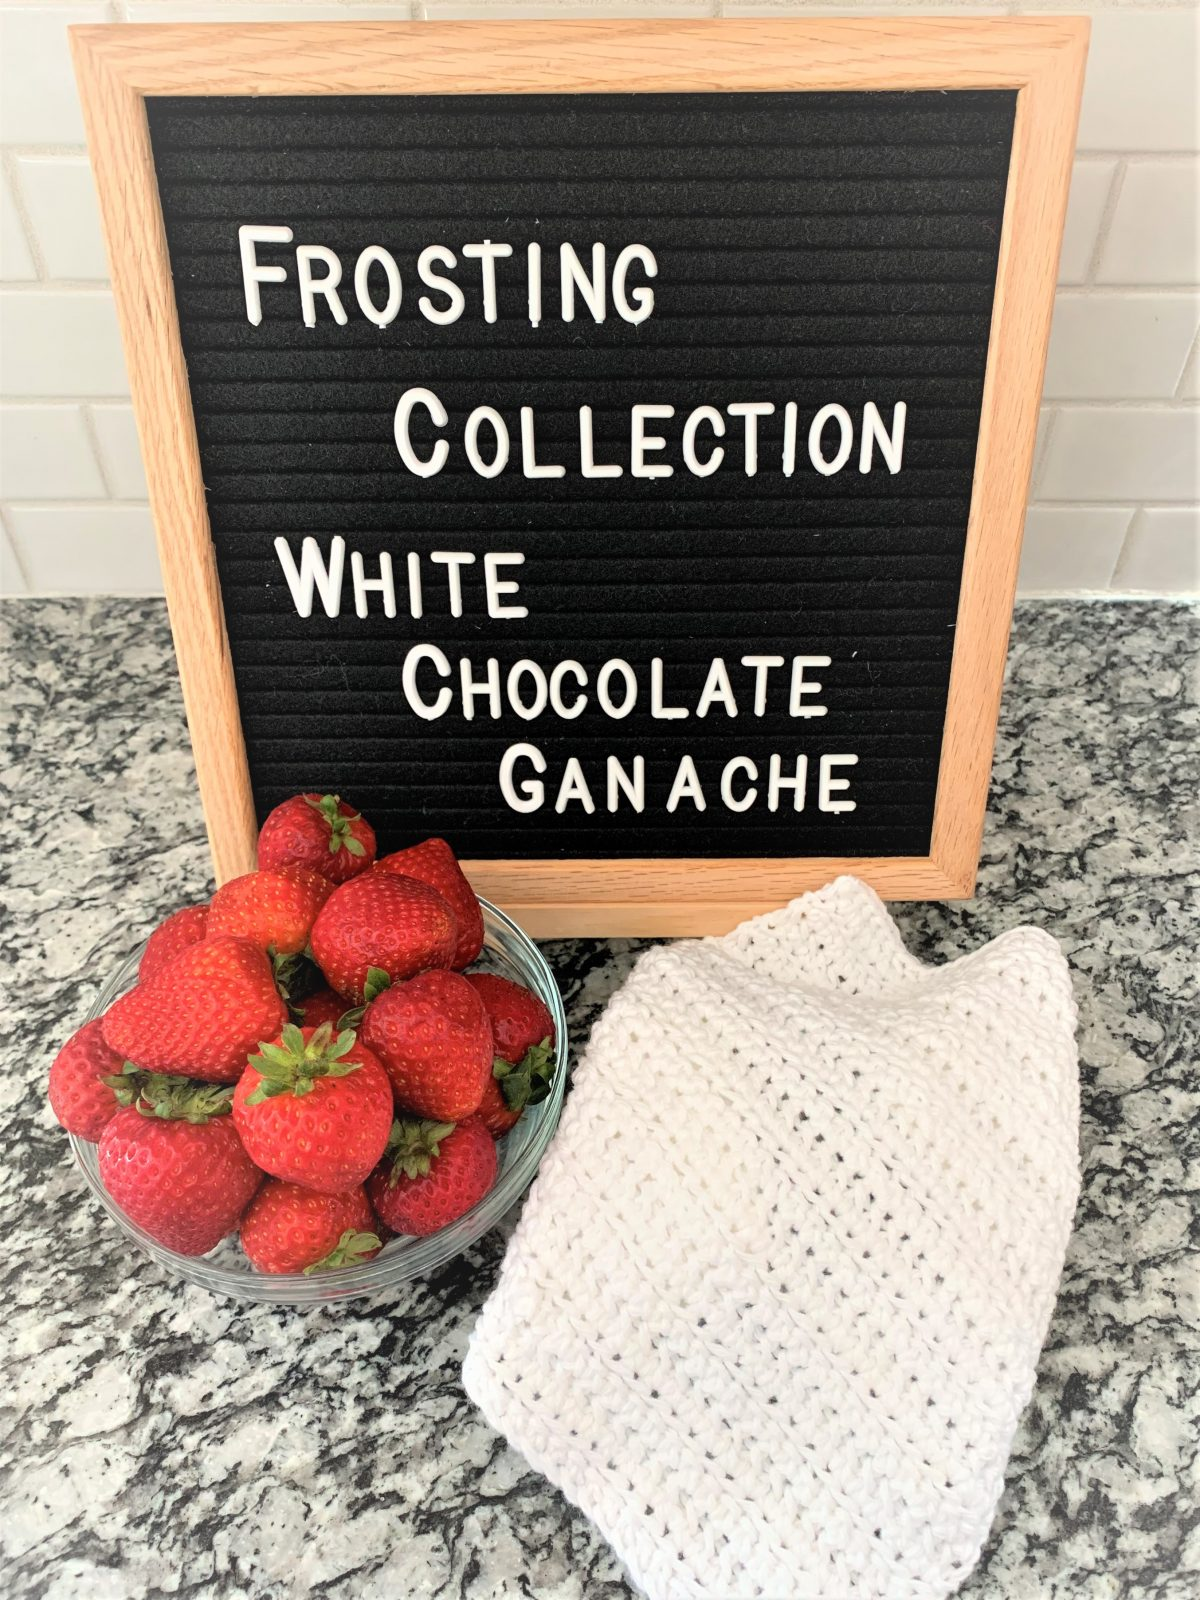 Free Crochet Dishcloth Pattern – Frosting Collection – White Chocolate Ganache – Part 6